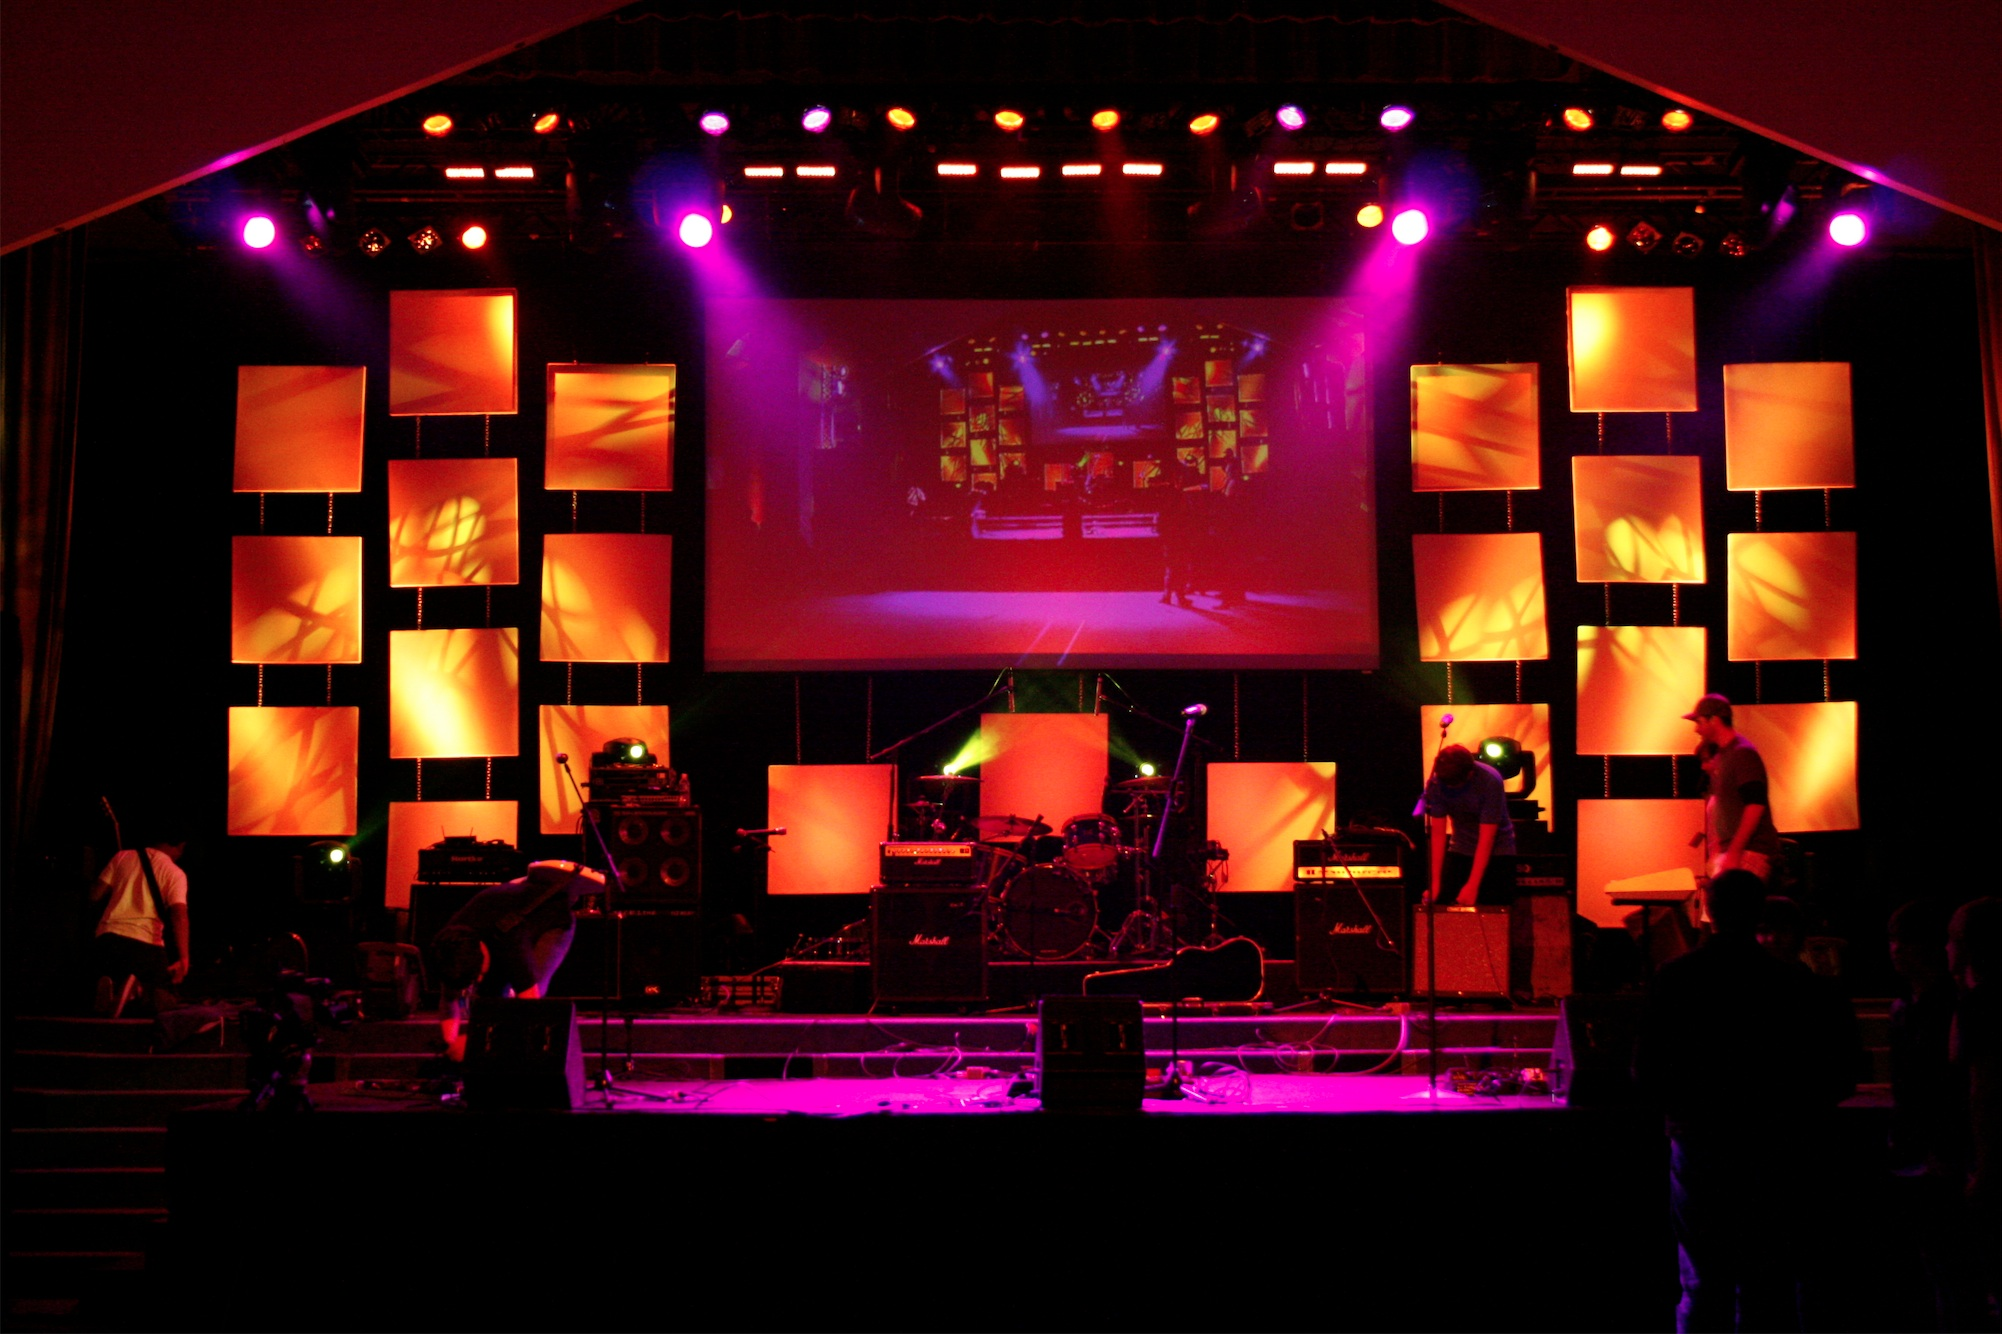 outdoor concert stage design outdoor stage design ideas hd